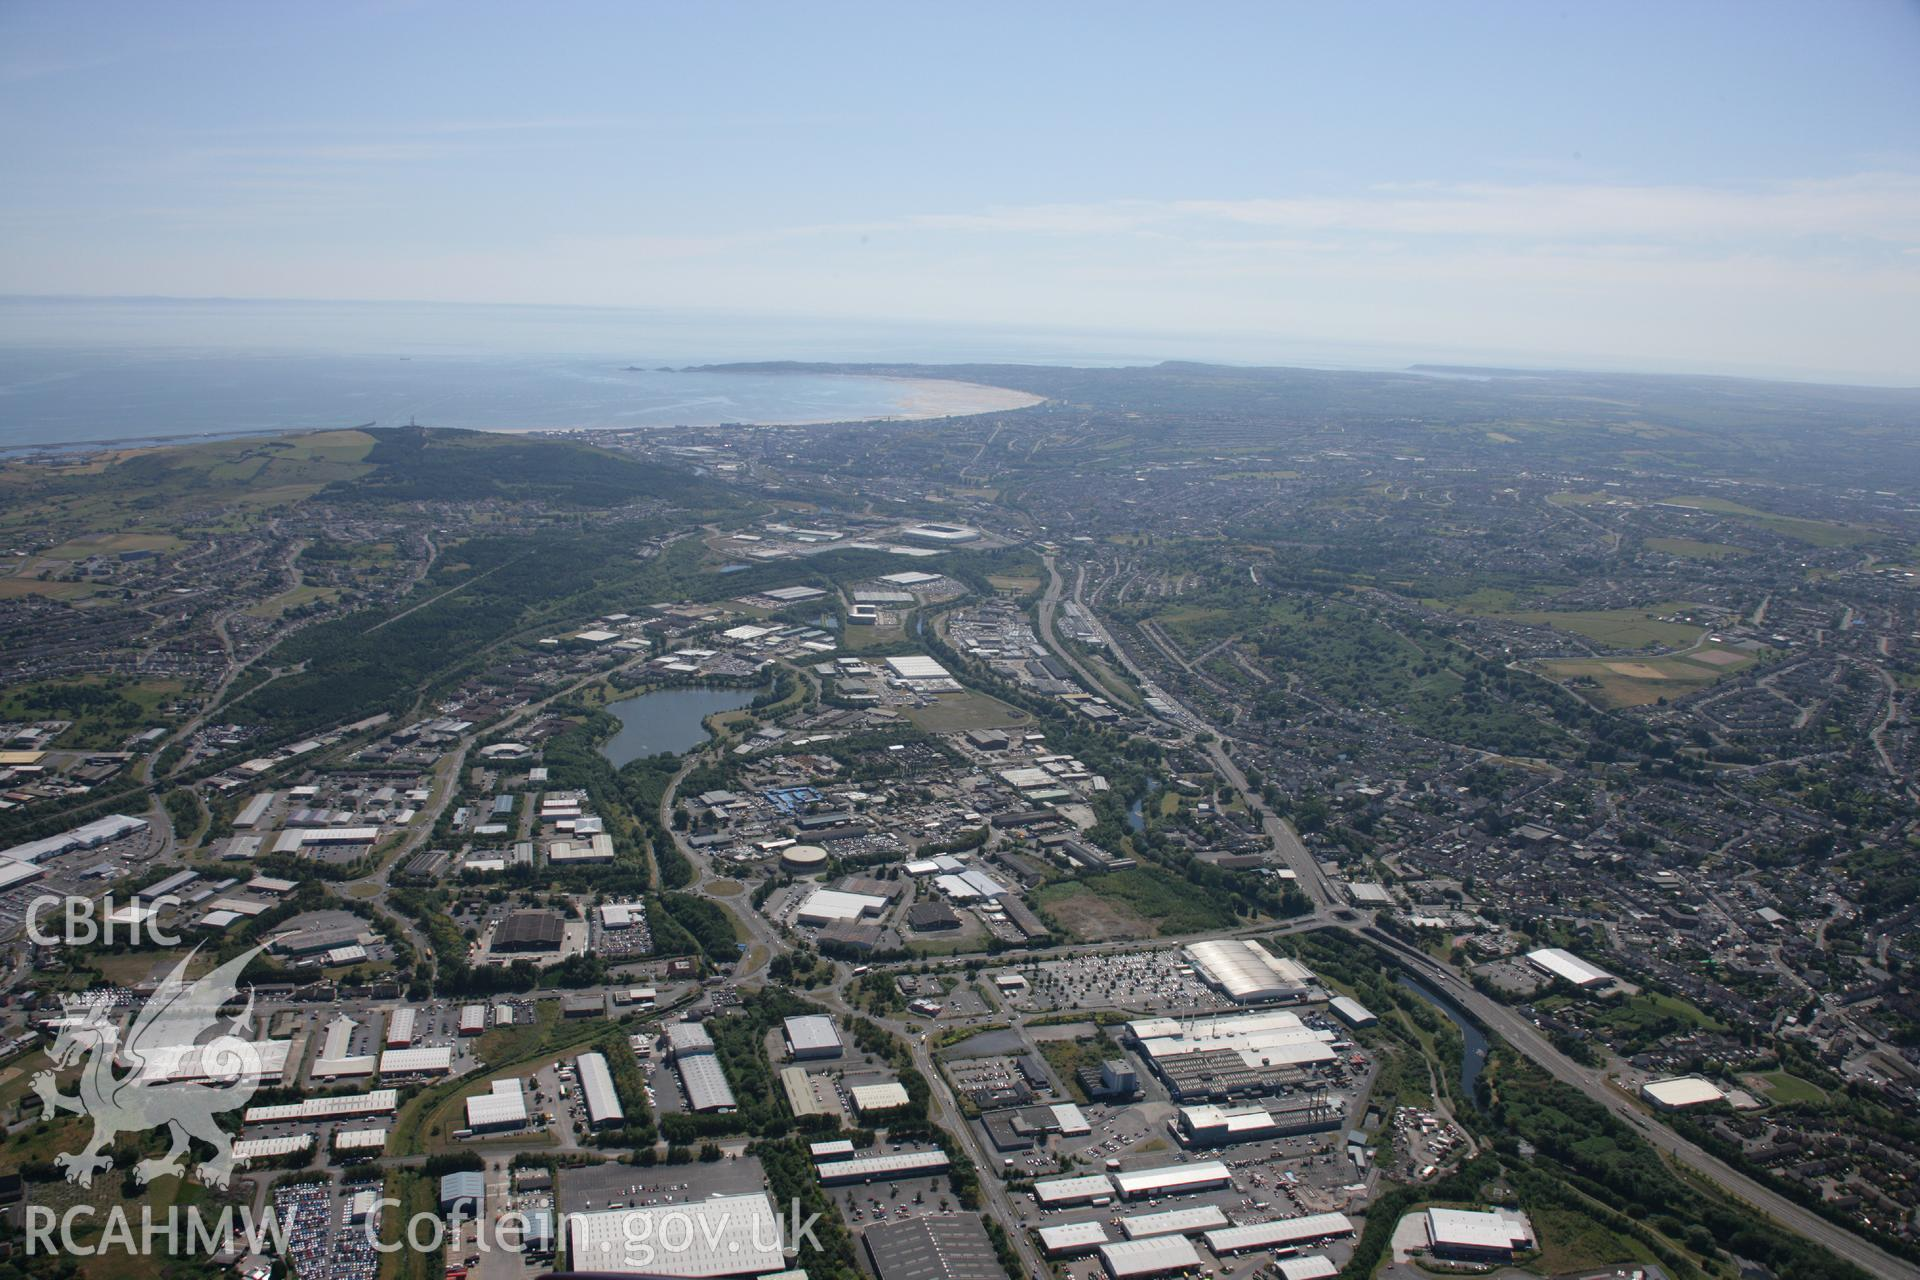 RCAHMW colour oblique aerial photograph of Swansea. Taken on 24 July 2006 by Toby Driver.